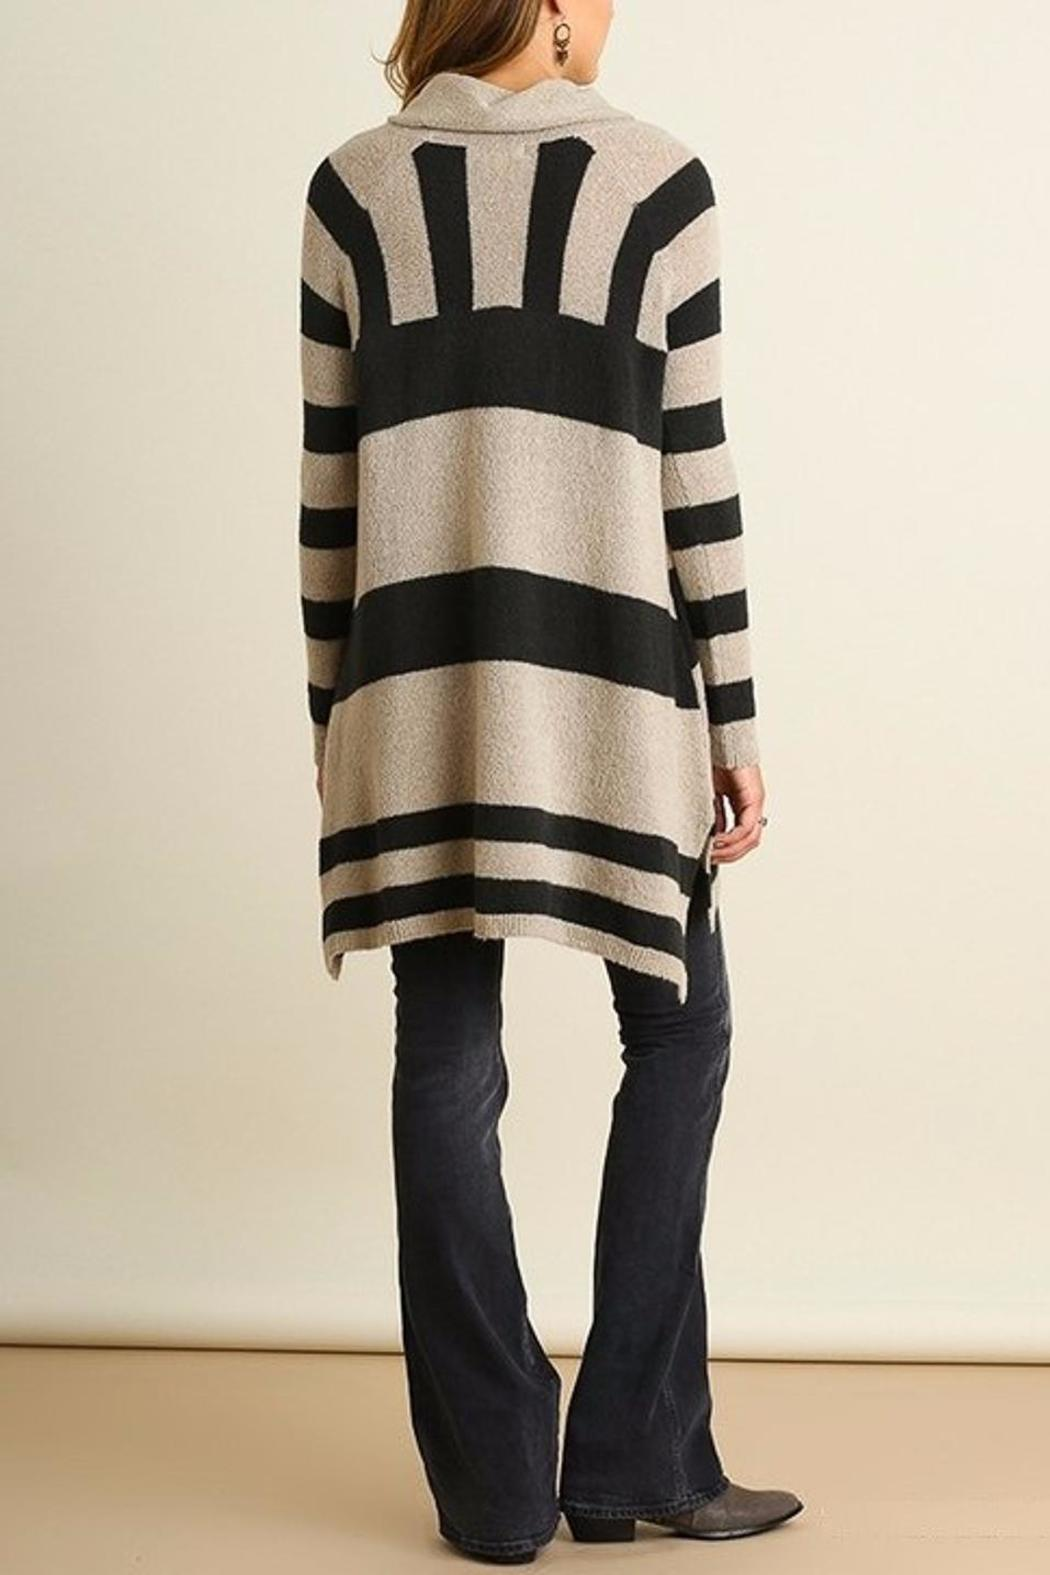 People Outfitter Stripe Knit Tunic - Front Full Image